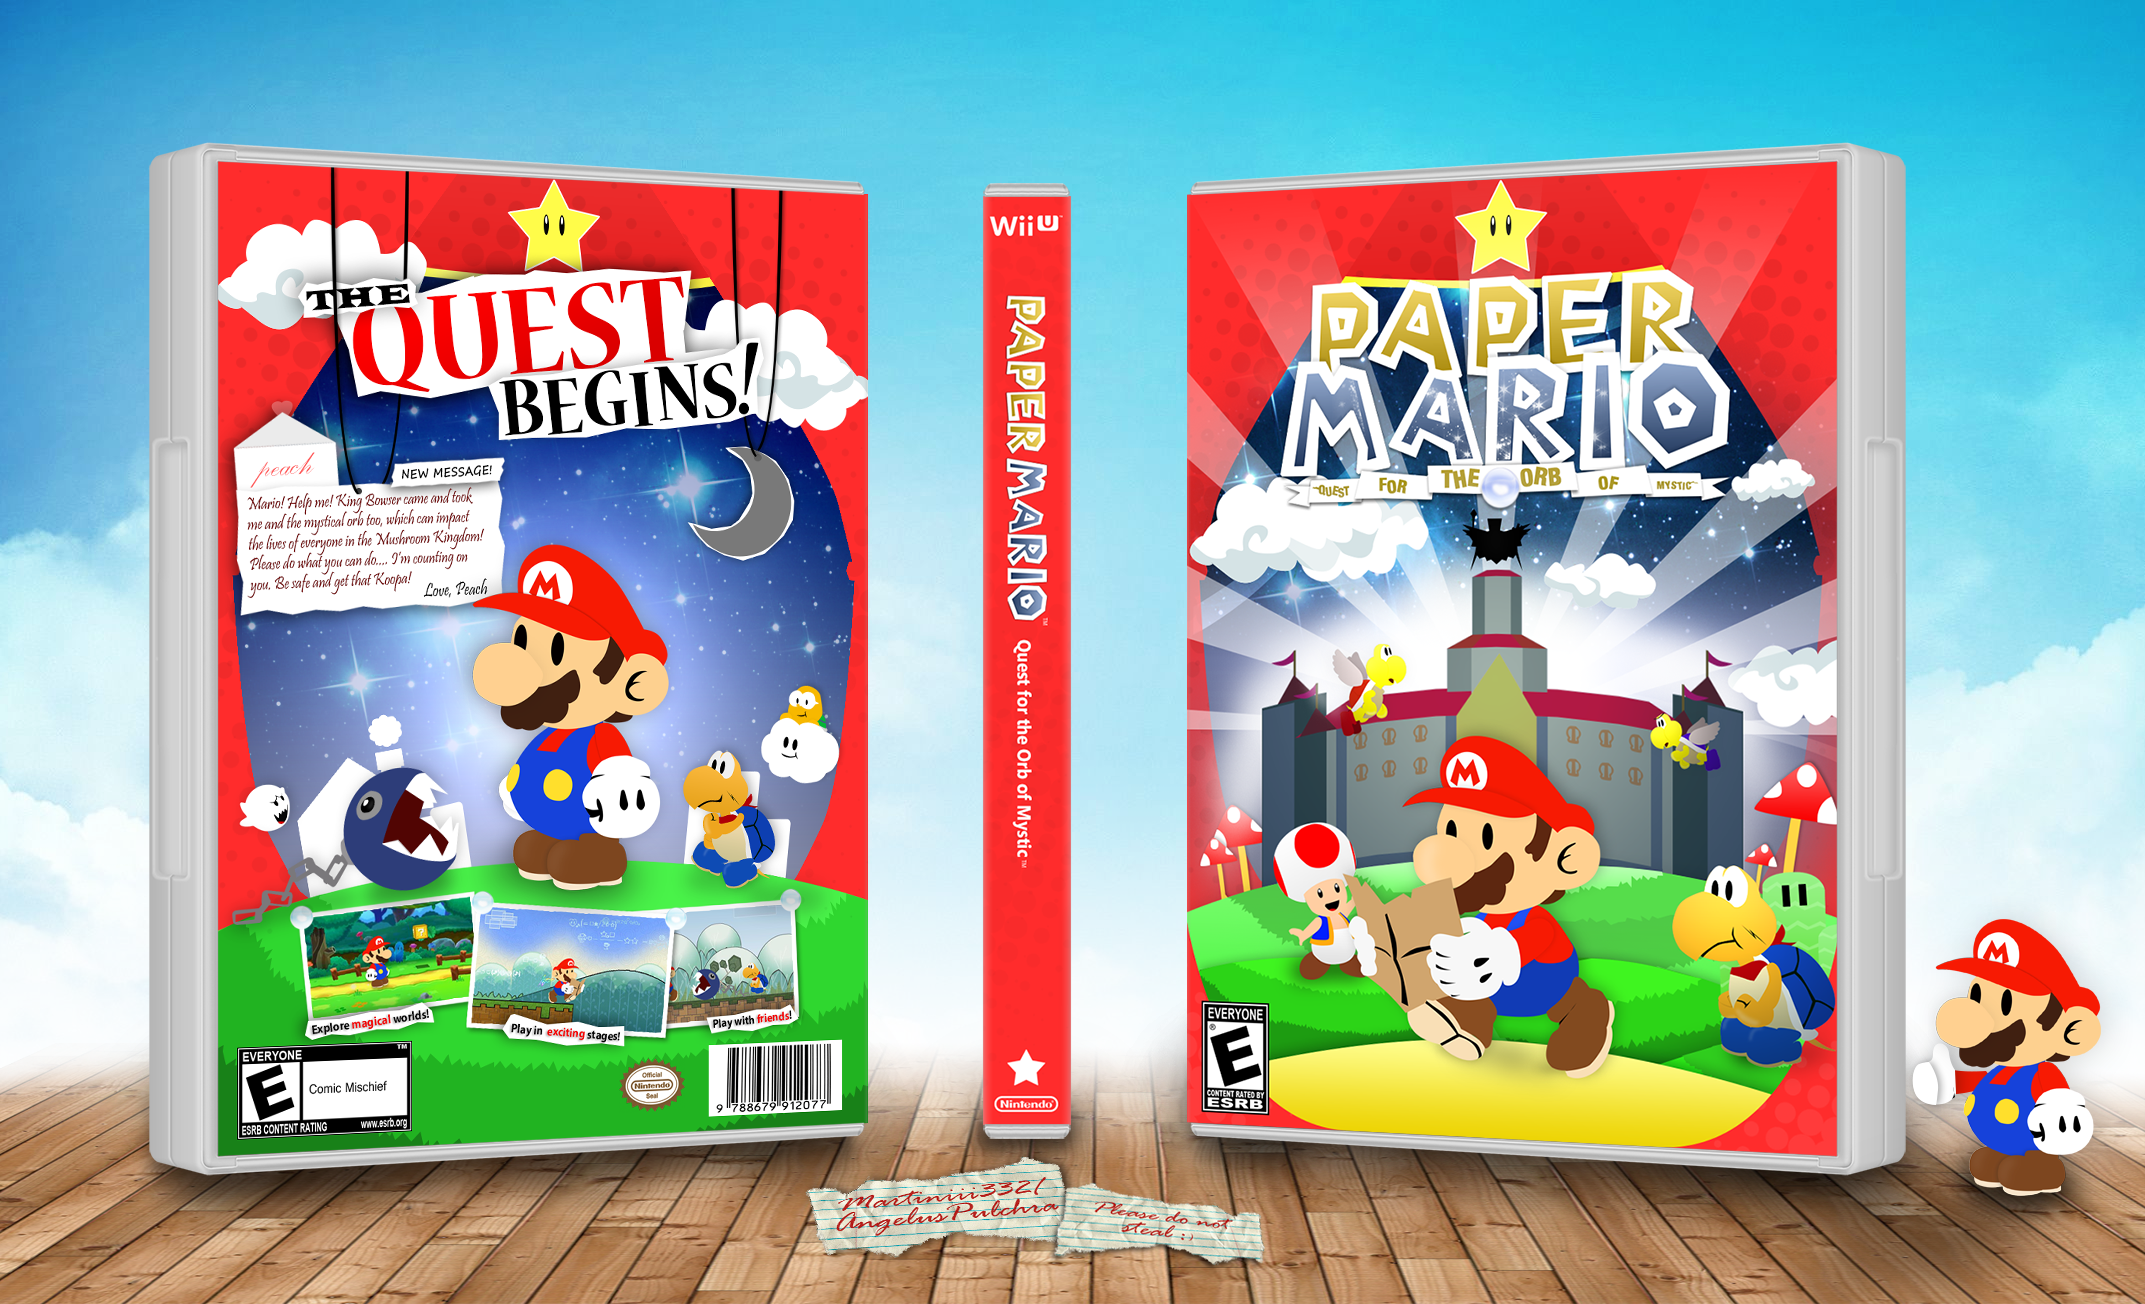 Paper Mario: Quest for the Orb of Mystic box cover